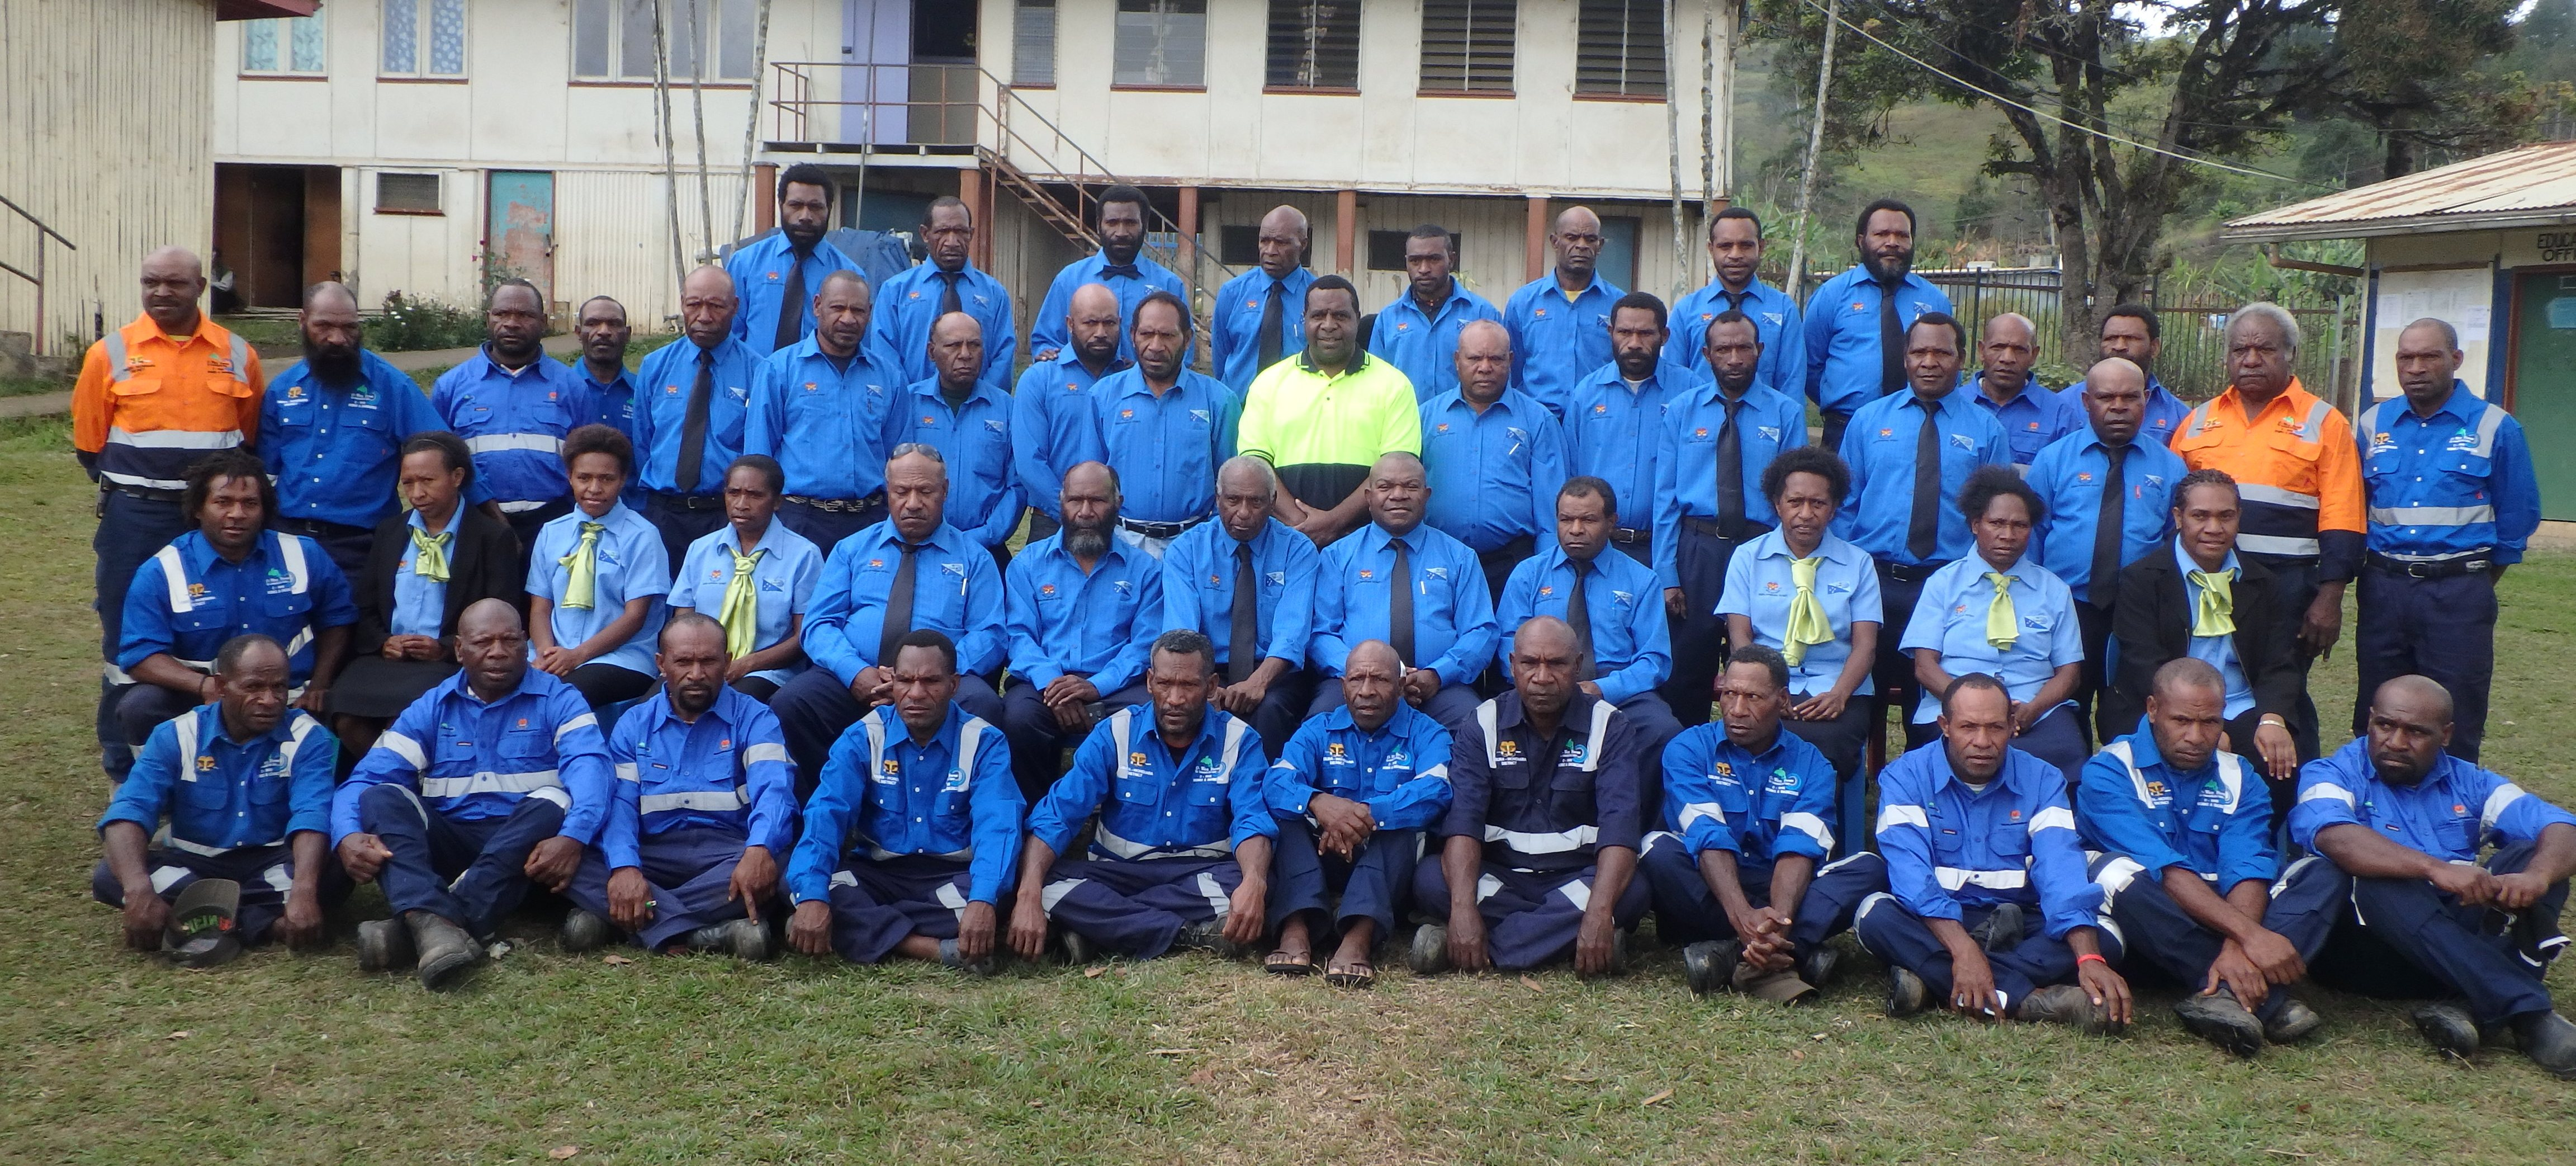 The MP for Obura Wonenara (The Honorable Mehrra Kipefa) [at centre, in high-vis top] with the District Development Authority Board and District Administration Team, in their newly issued uniforms, December 2015 (image: Bennie Atigini, CARE PNG)